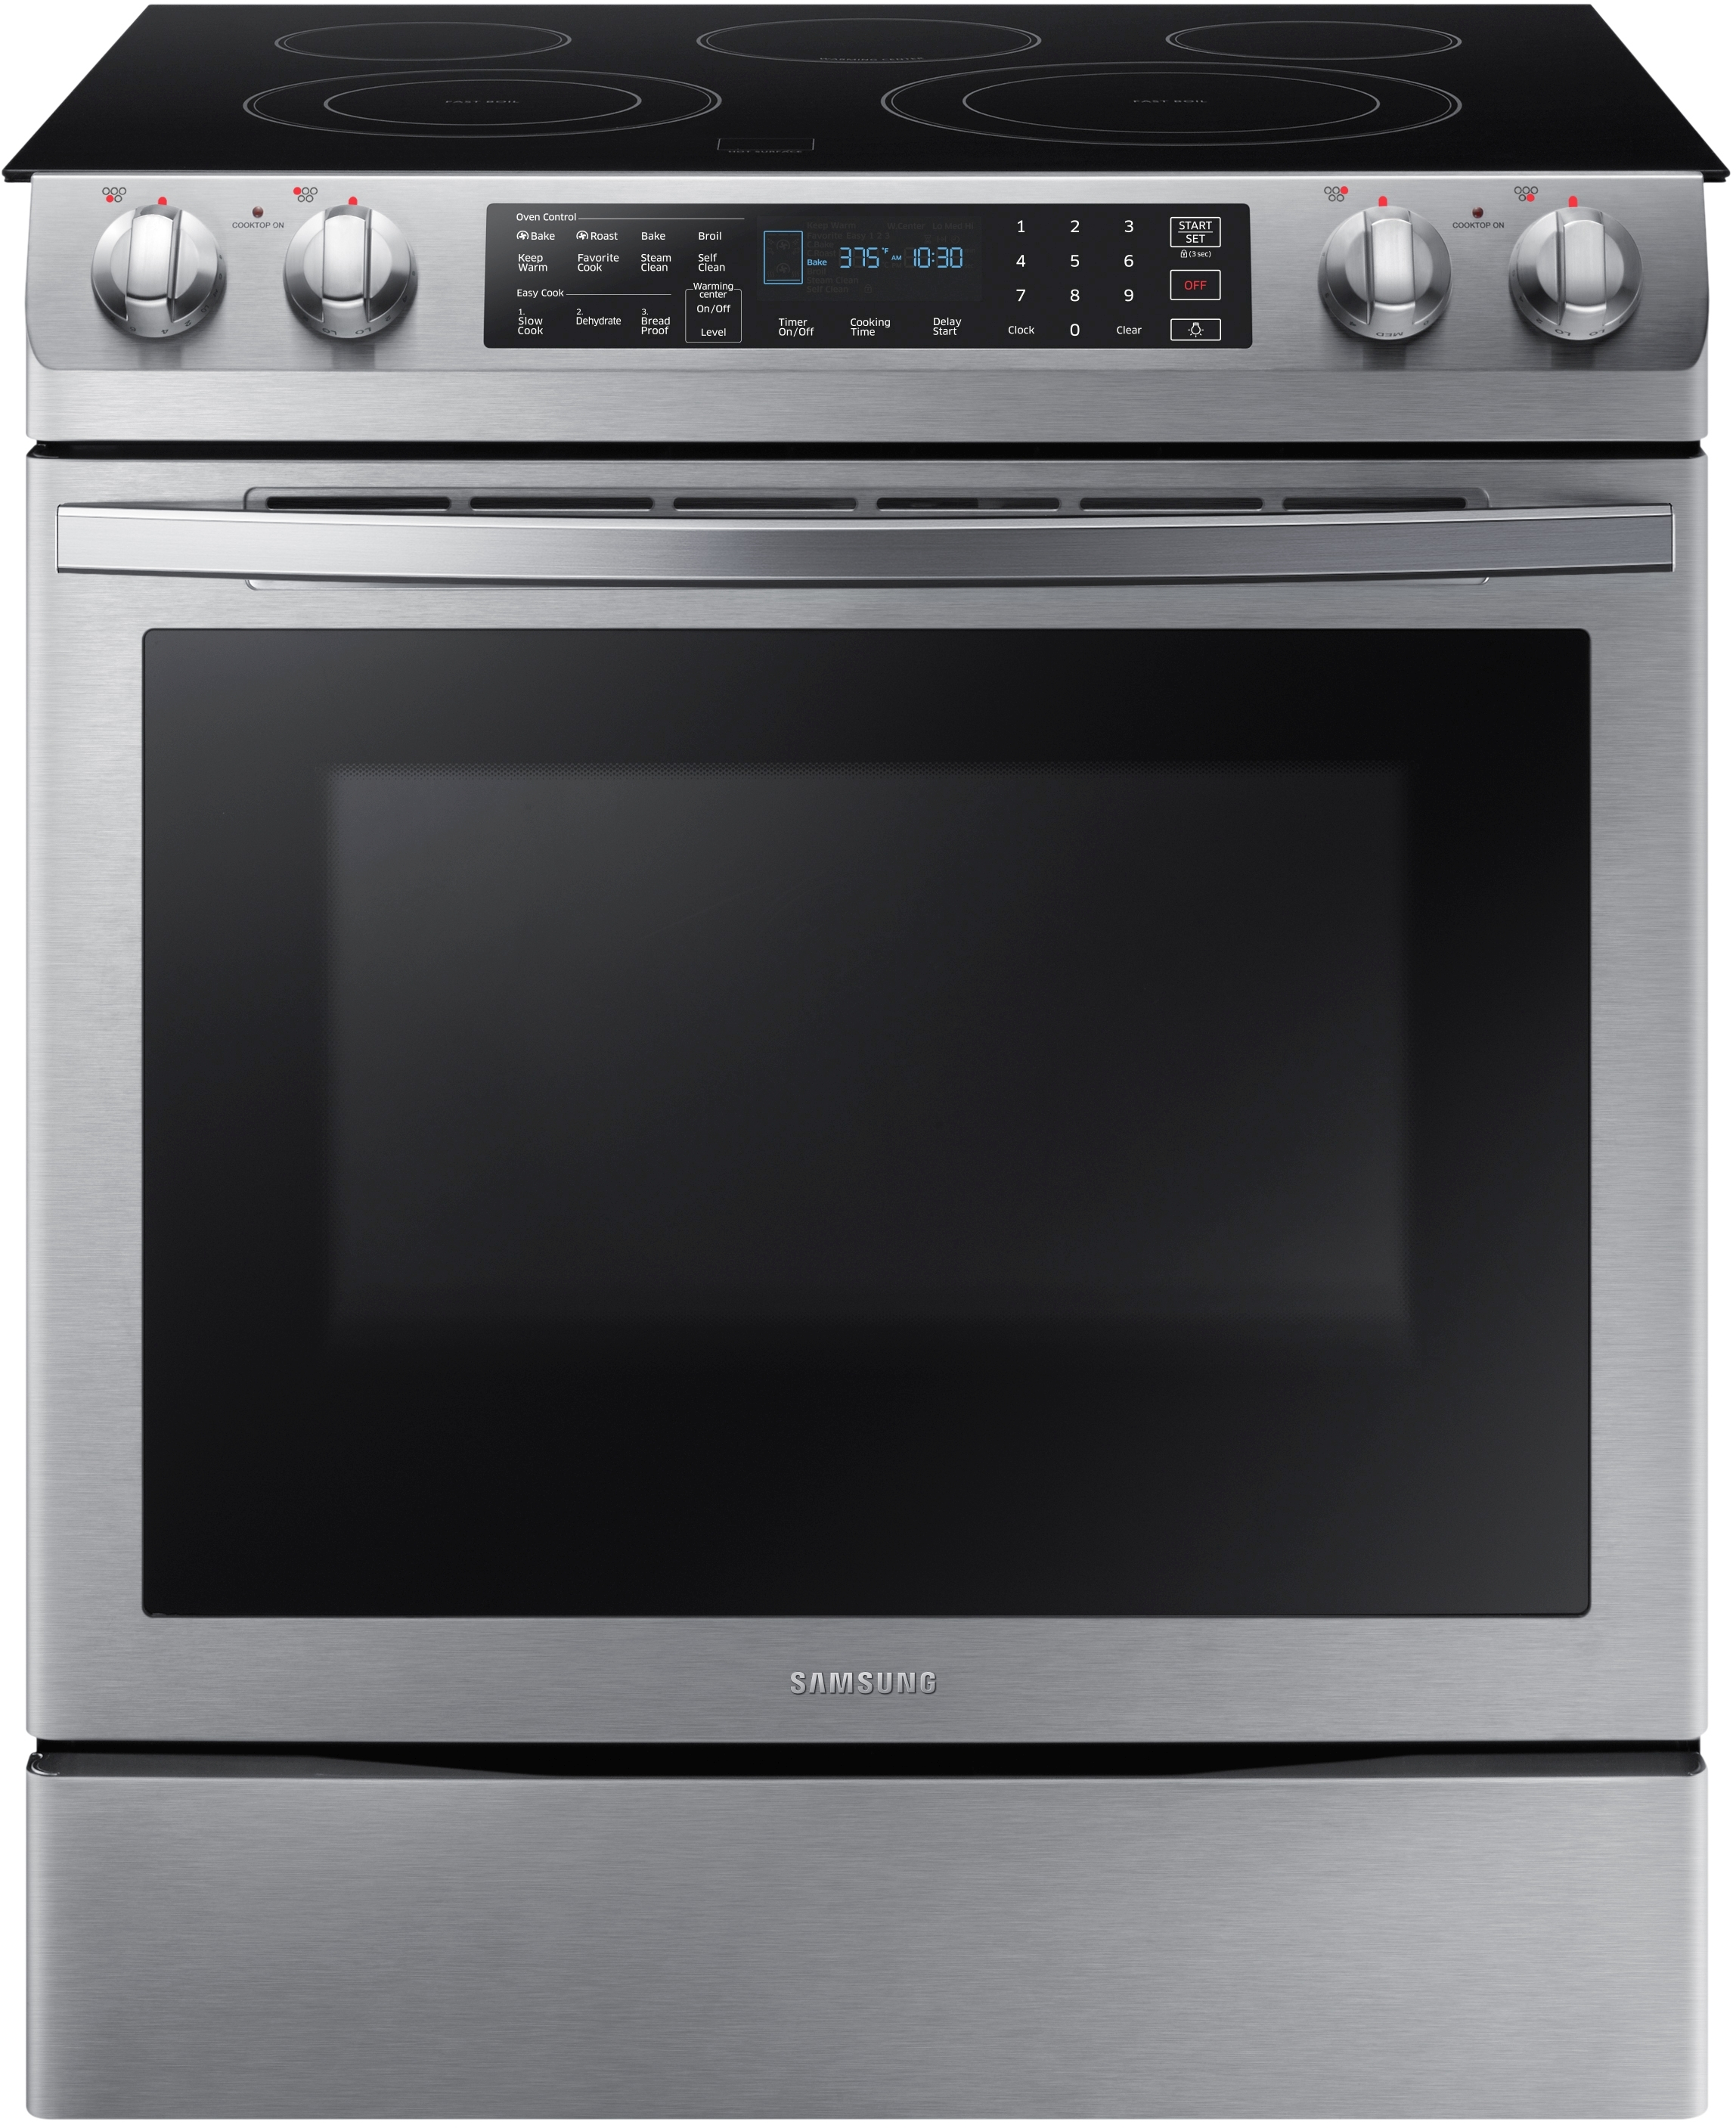 Samsung 29 94 Quot Stainless Steel Slide In Electric Range